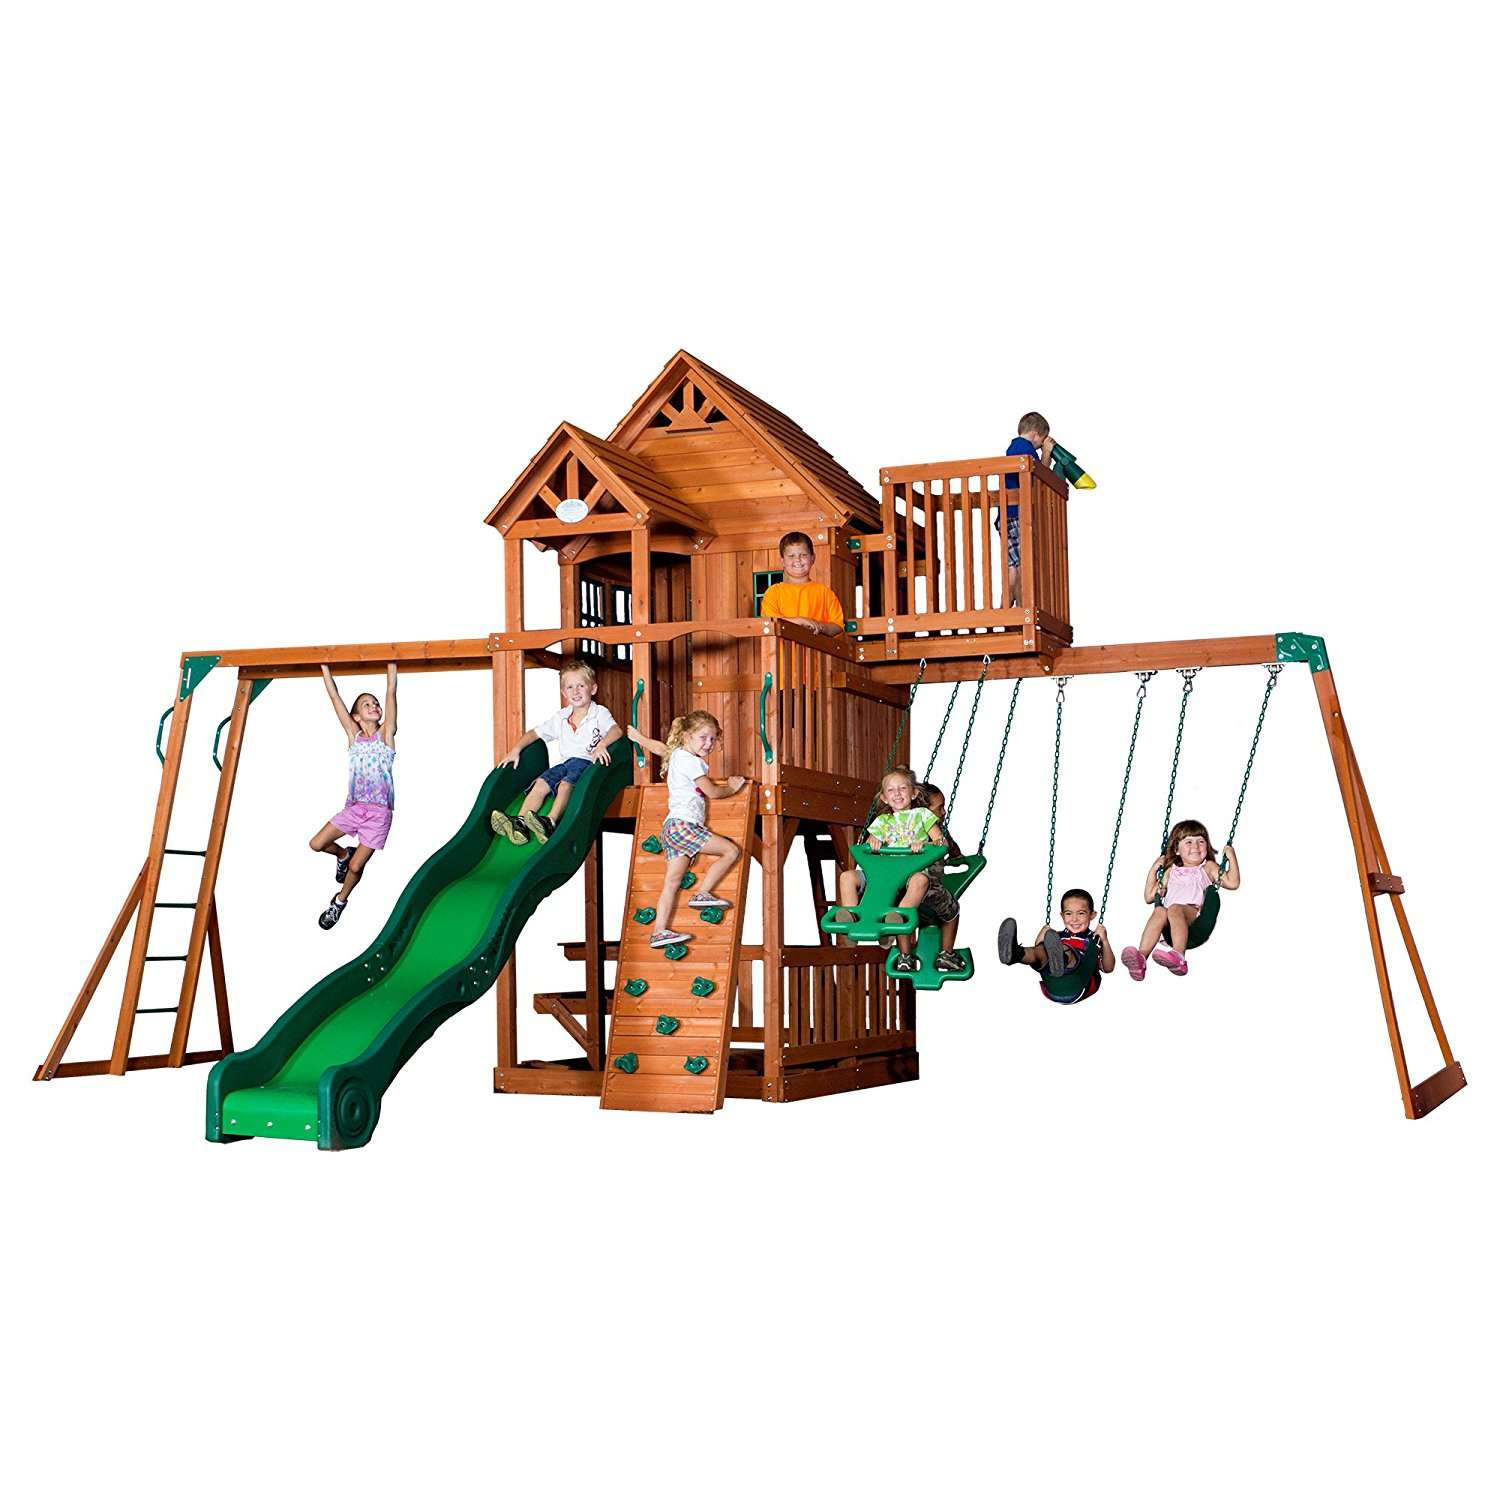 A picture of the Backyard Discovery Skyfort II play set